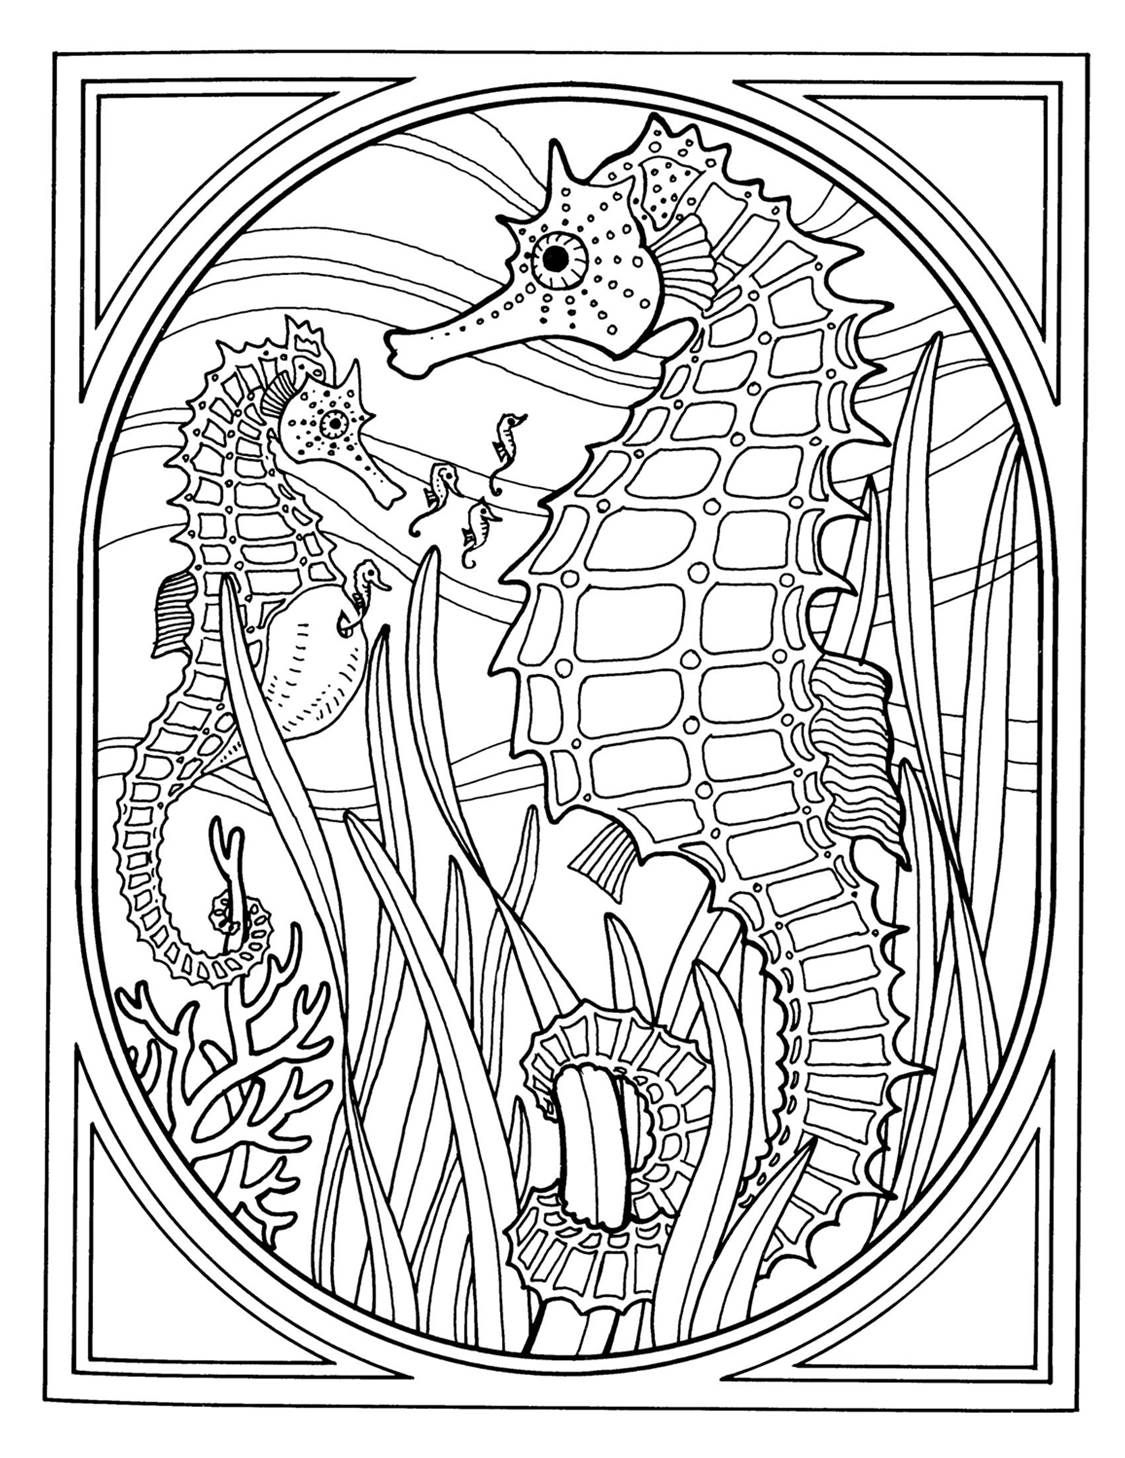 Image Result For Advanced Coloring Pages Of Houses